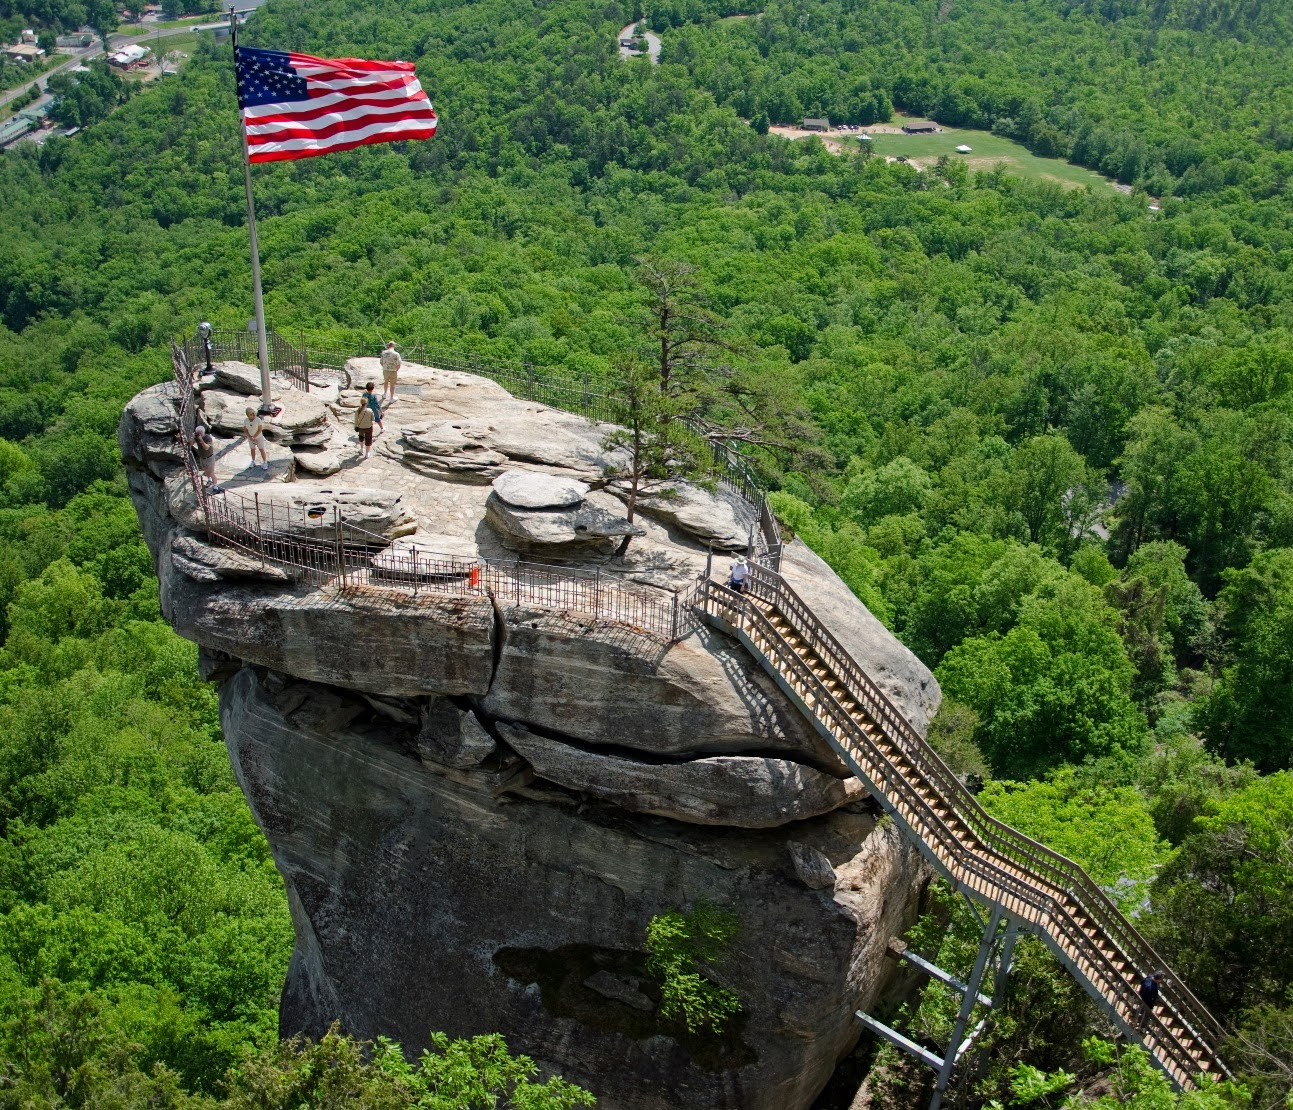 Chimney Rock, North Carolina